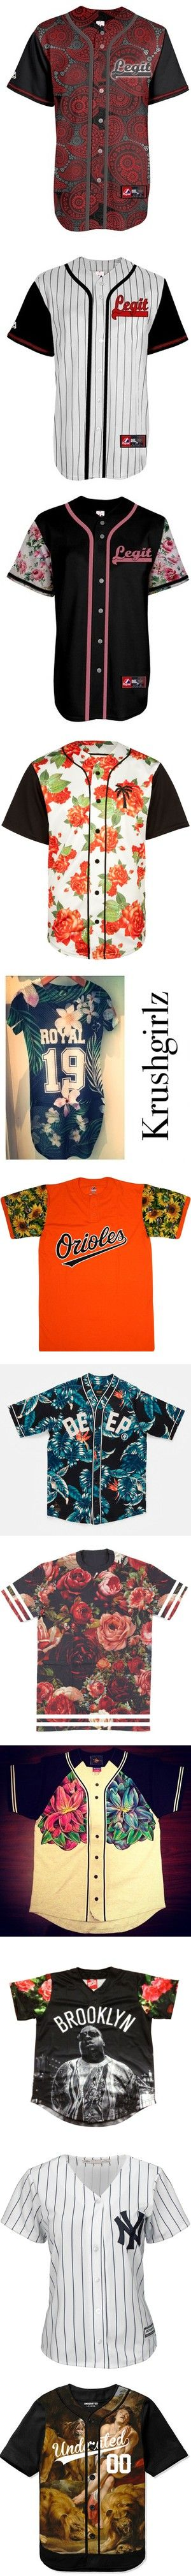 jerseys by simoneswagg on Polyvore featuring women's fashion, baseball jerseys, tops, shirts, baseball jersey shirts, baseball jersey top, shirt tops, men's fashion, men's clothing and jersey